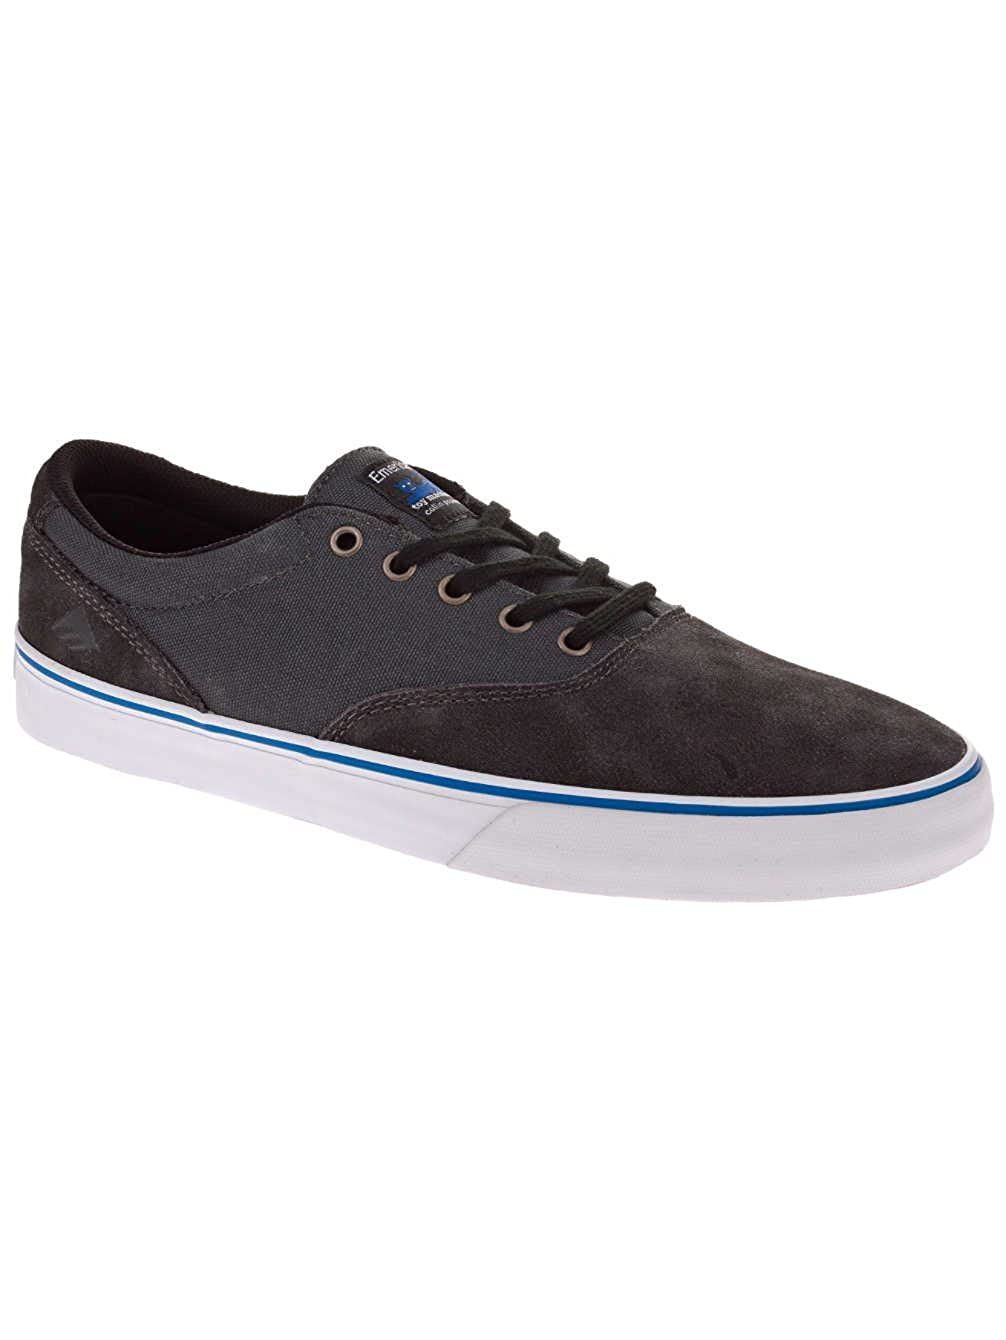 Amazon.com: Emerica Provost Slim Vulcxtoy Machine Size 7 Black/Grey Skate Shoes: Shoes